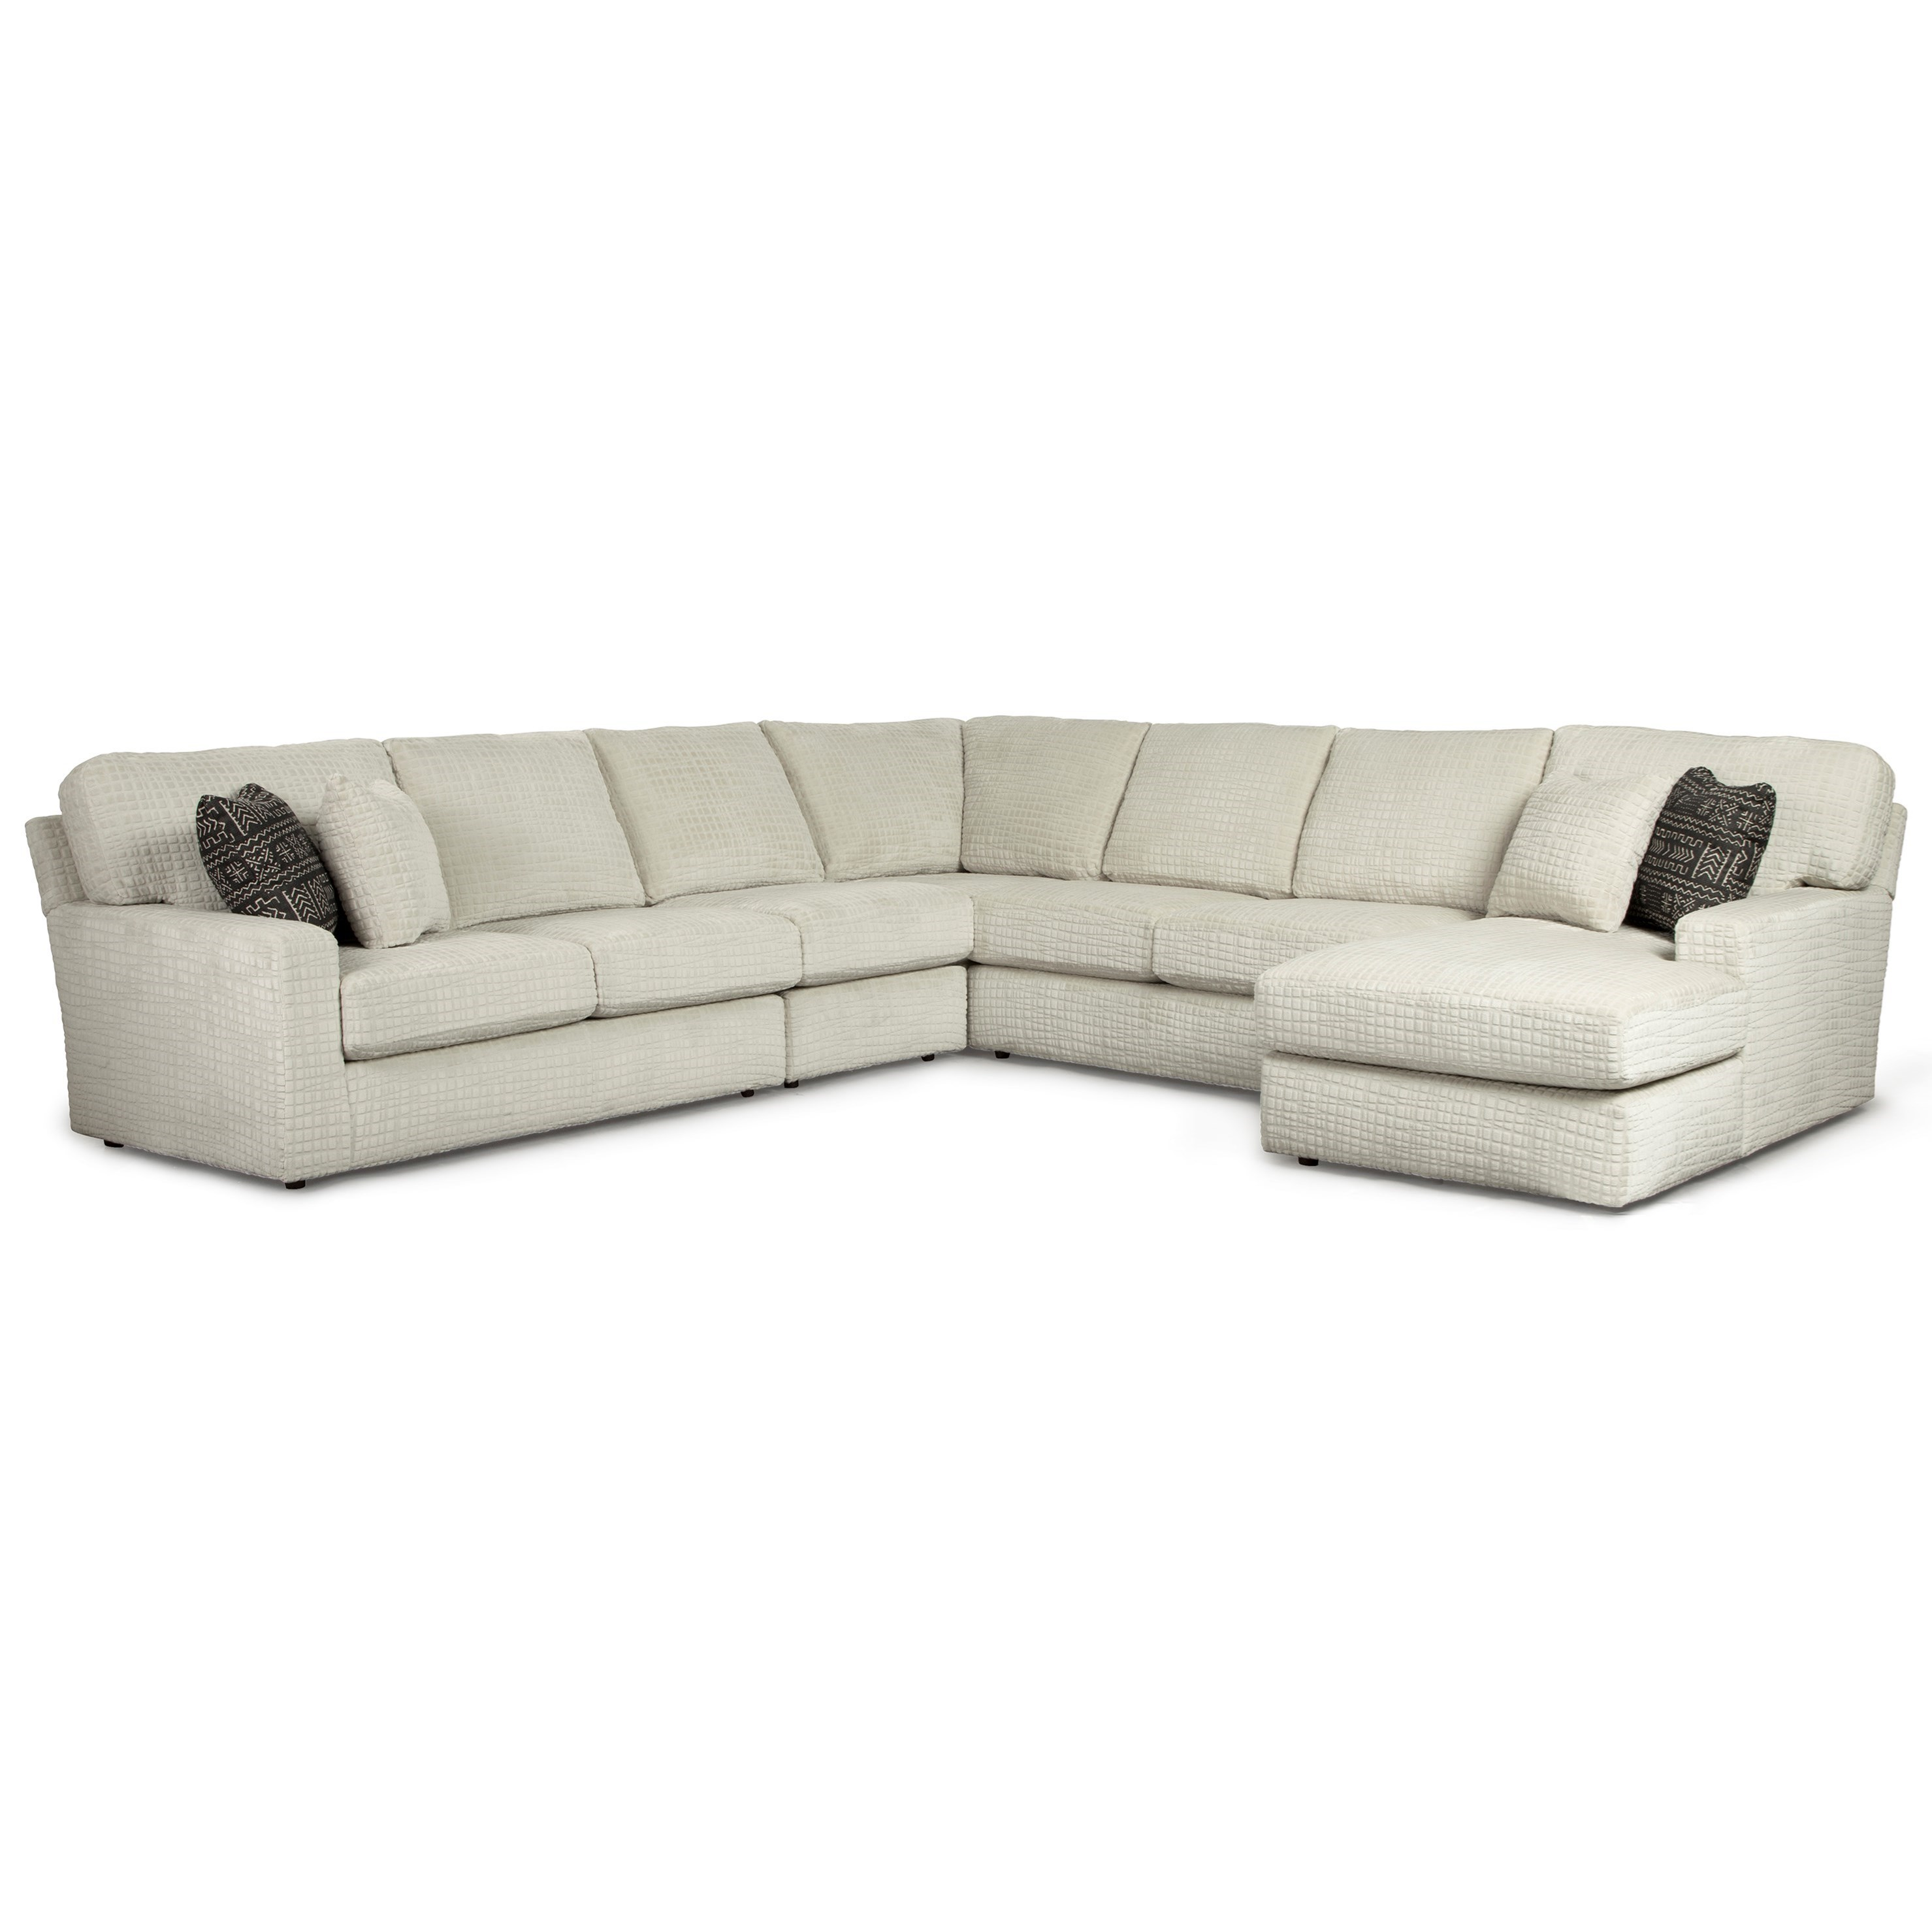 Best Home Furnishings Dovely Casual 5 Piece Sectional Sofa ...